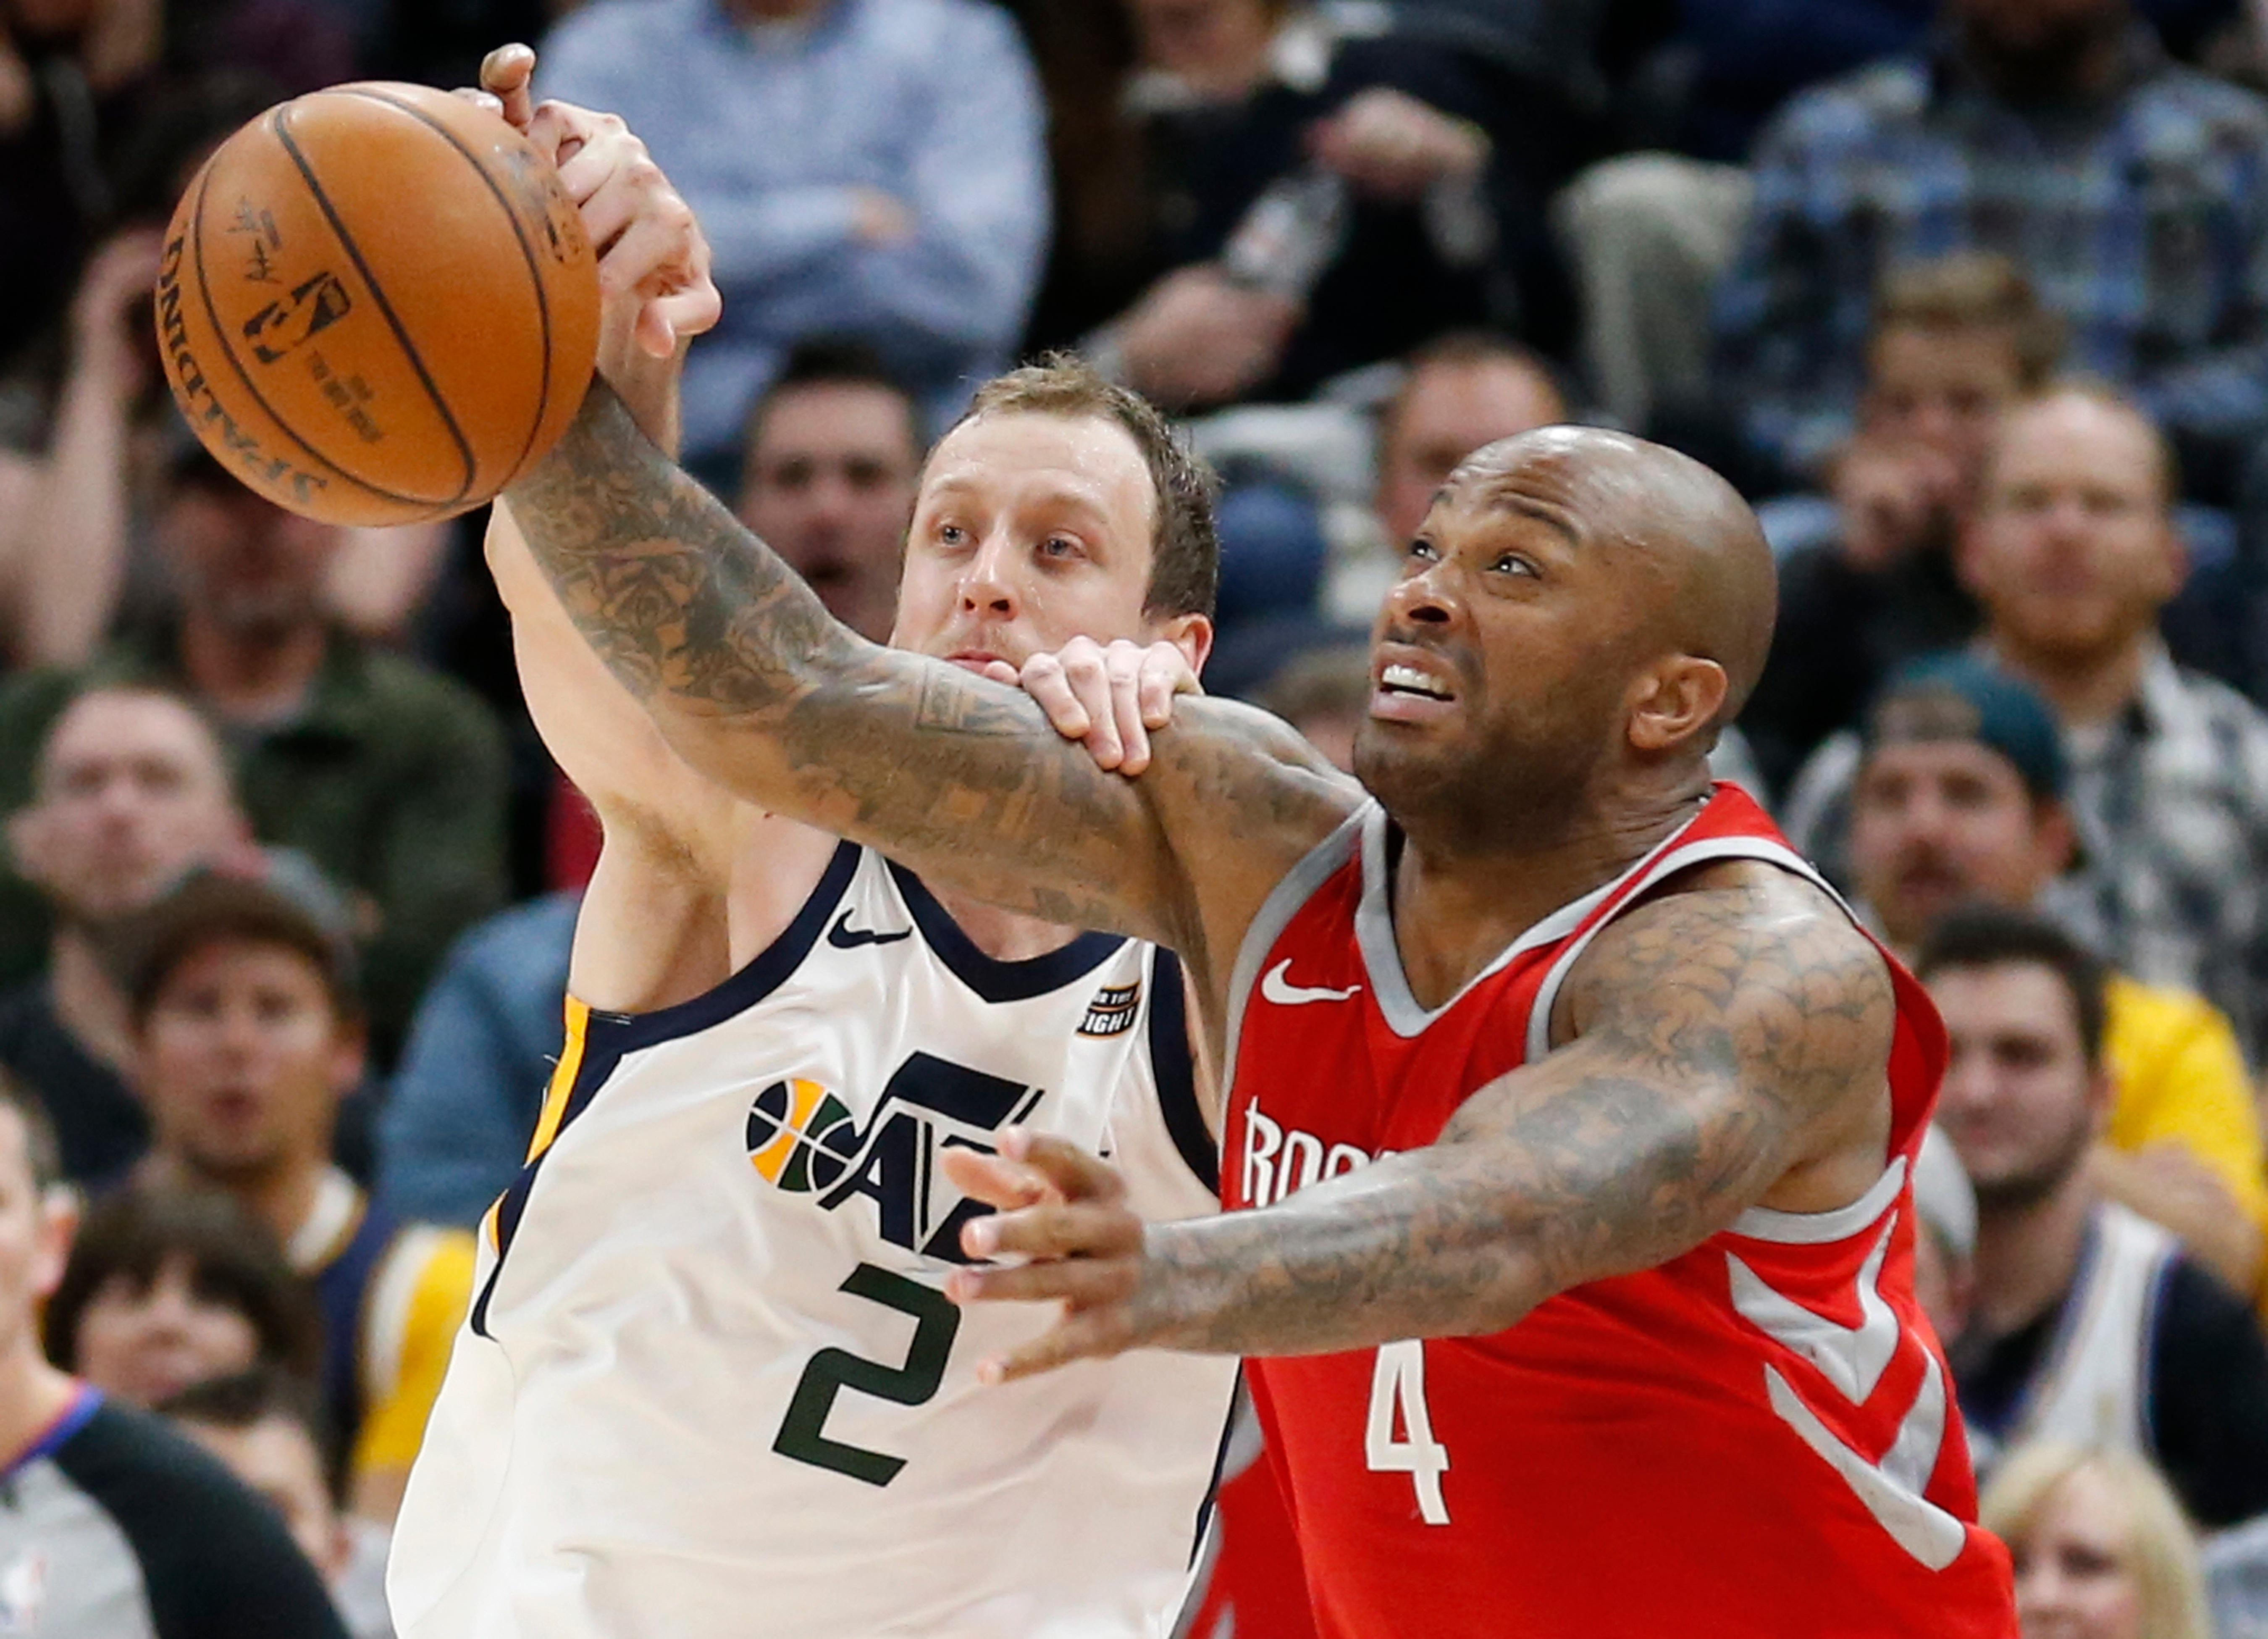 Utah Jazz forward Joe Ingles (2) and Houston Rockets forward PJ Tucker (4) battle for the ball in the second half during an NBA basketball game Monday, Feb. 26, 2018, in Salt Lake City. (AP Photo/Rick Bowmer)